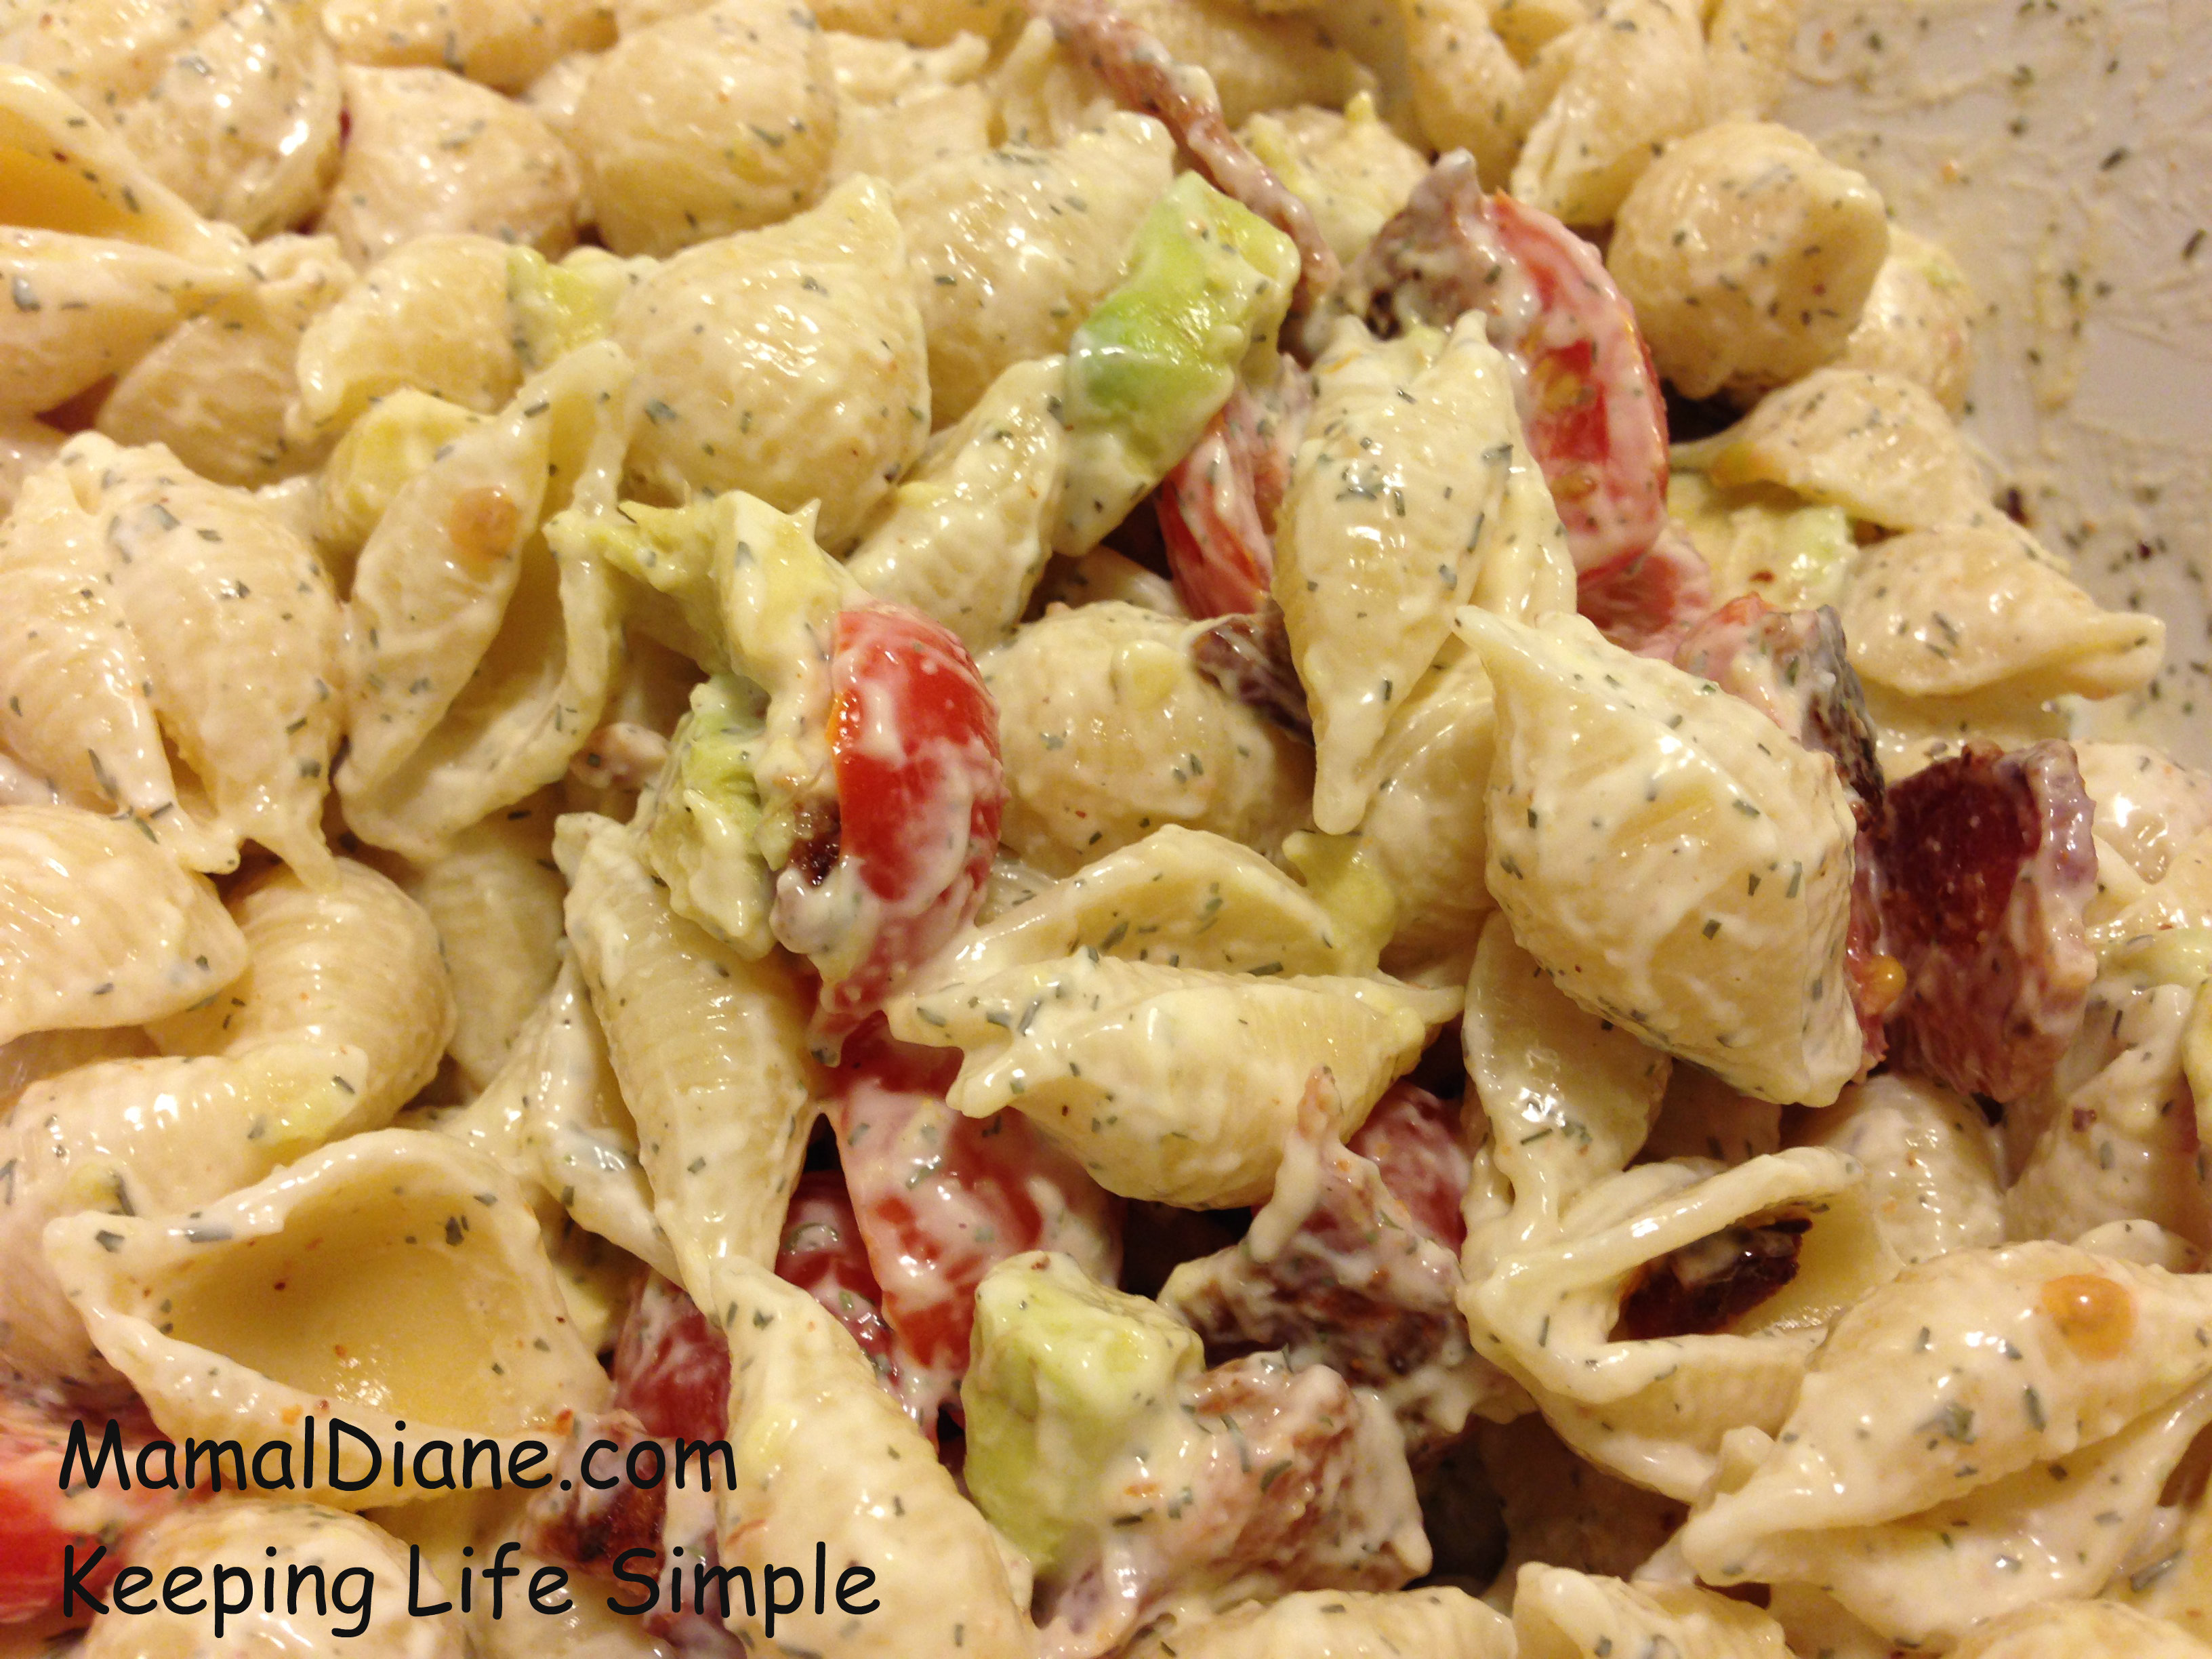 Creamy Bacon, Avocado, and Tomato Pasta Salad - Mamal Diane